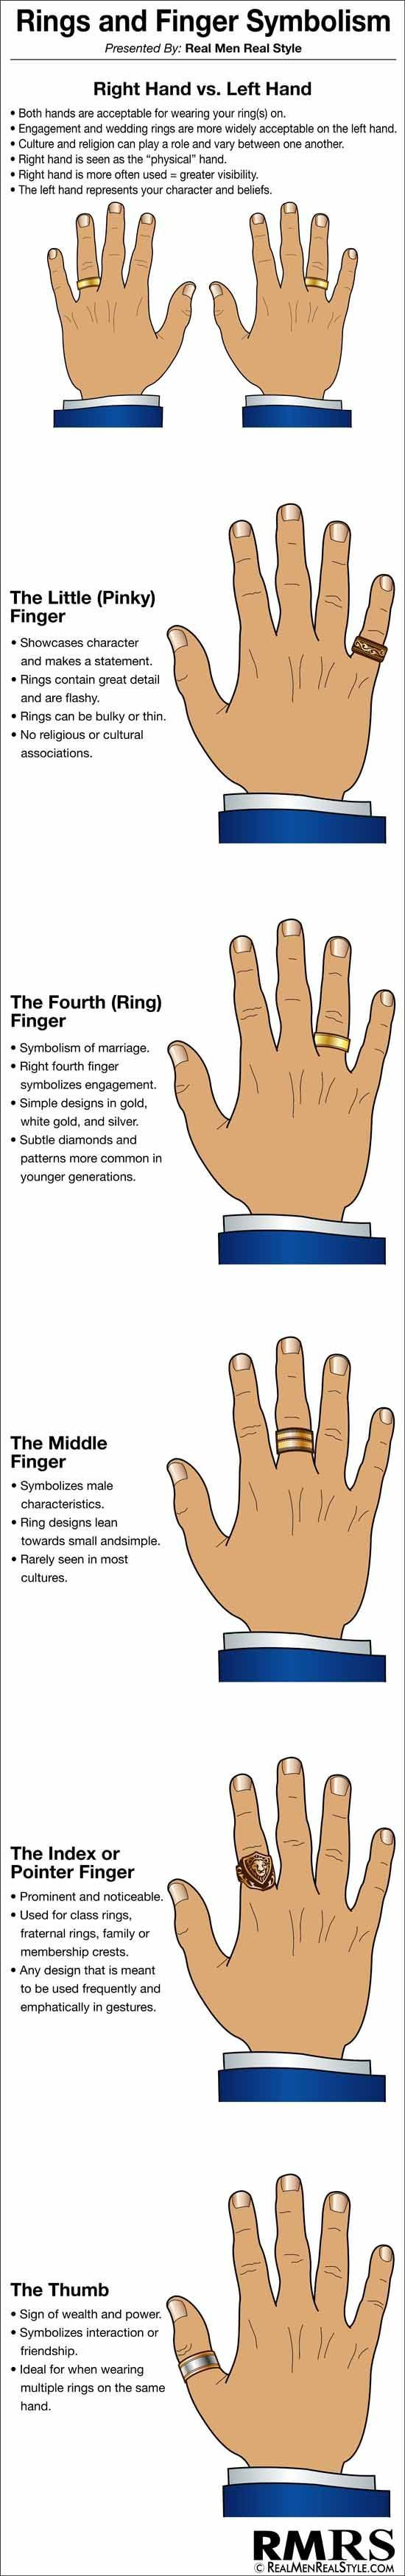 Ring Finger Symbolism Infographic Man S Guide To Rings Hand Jewelry Via